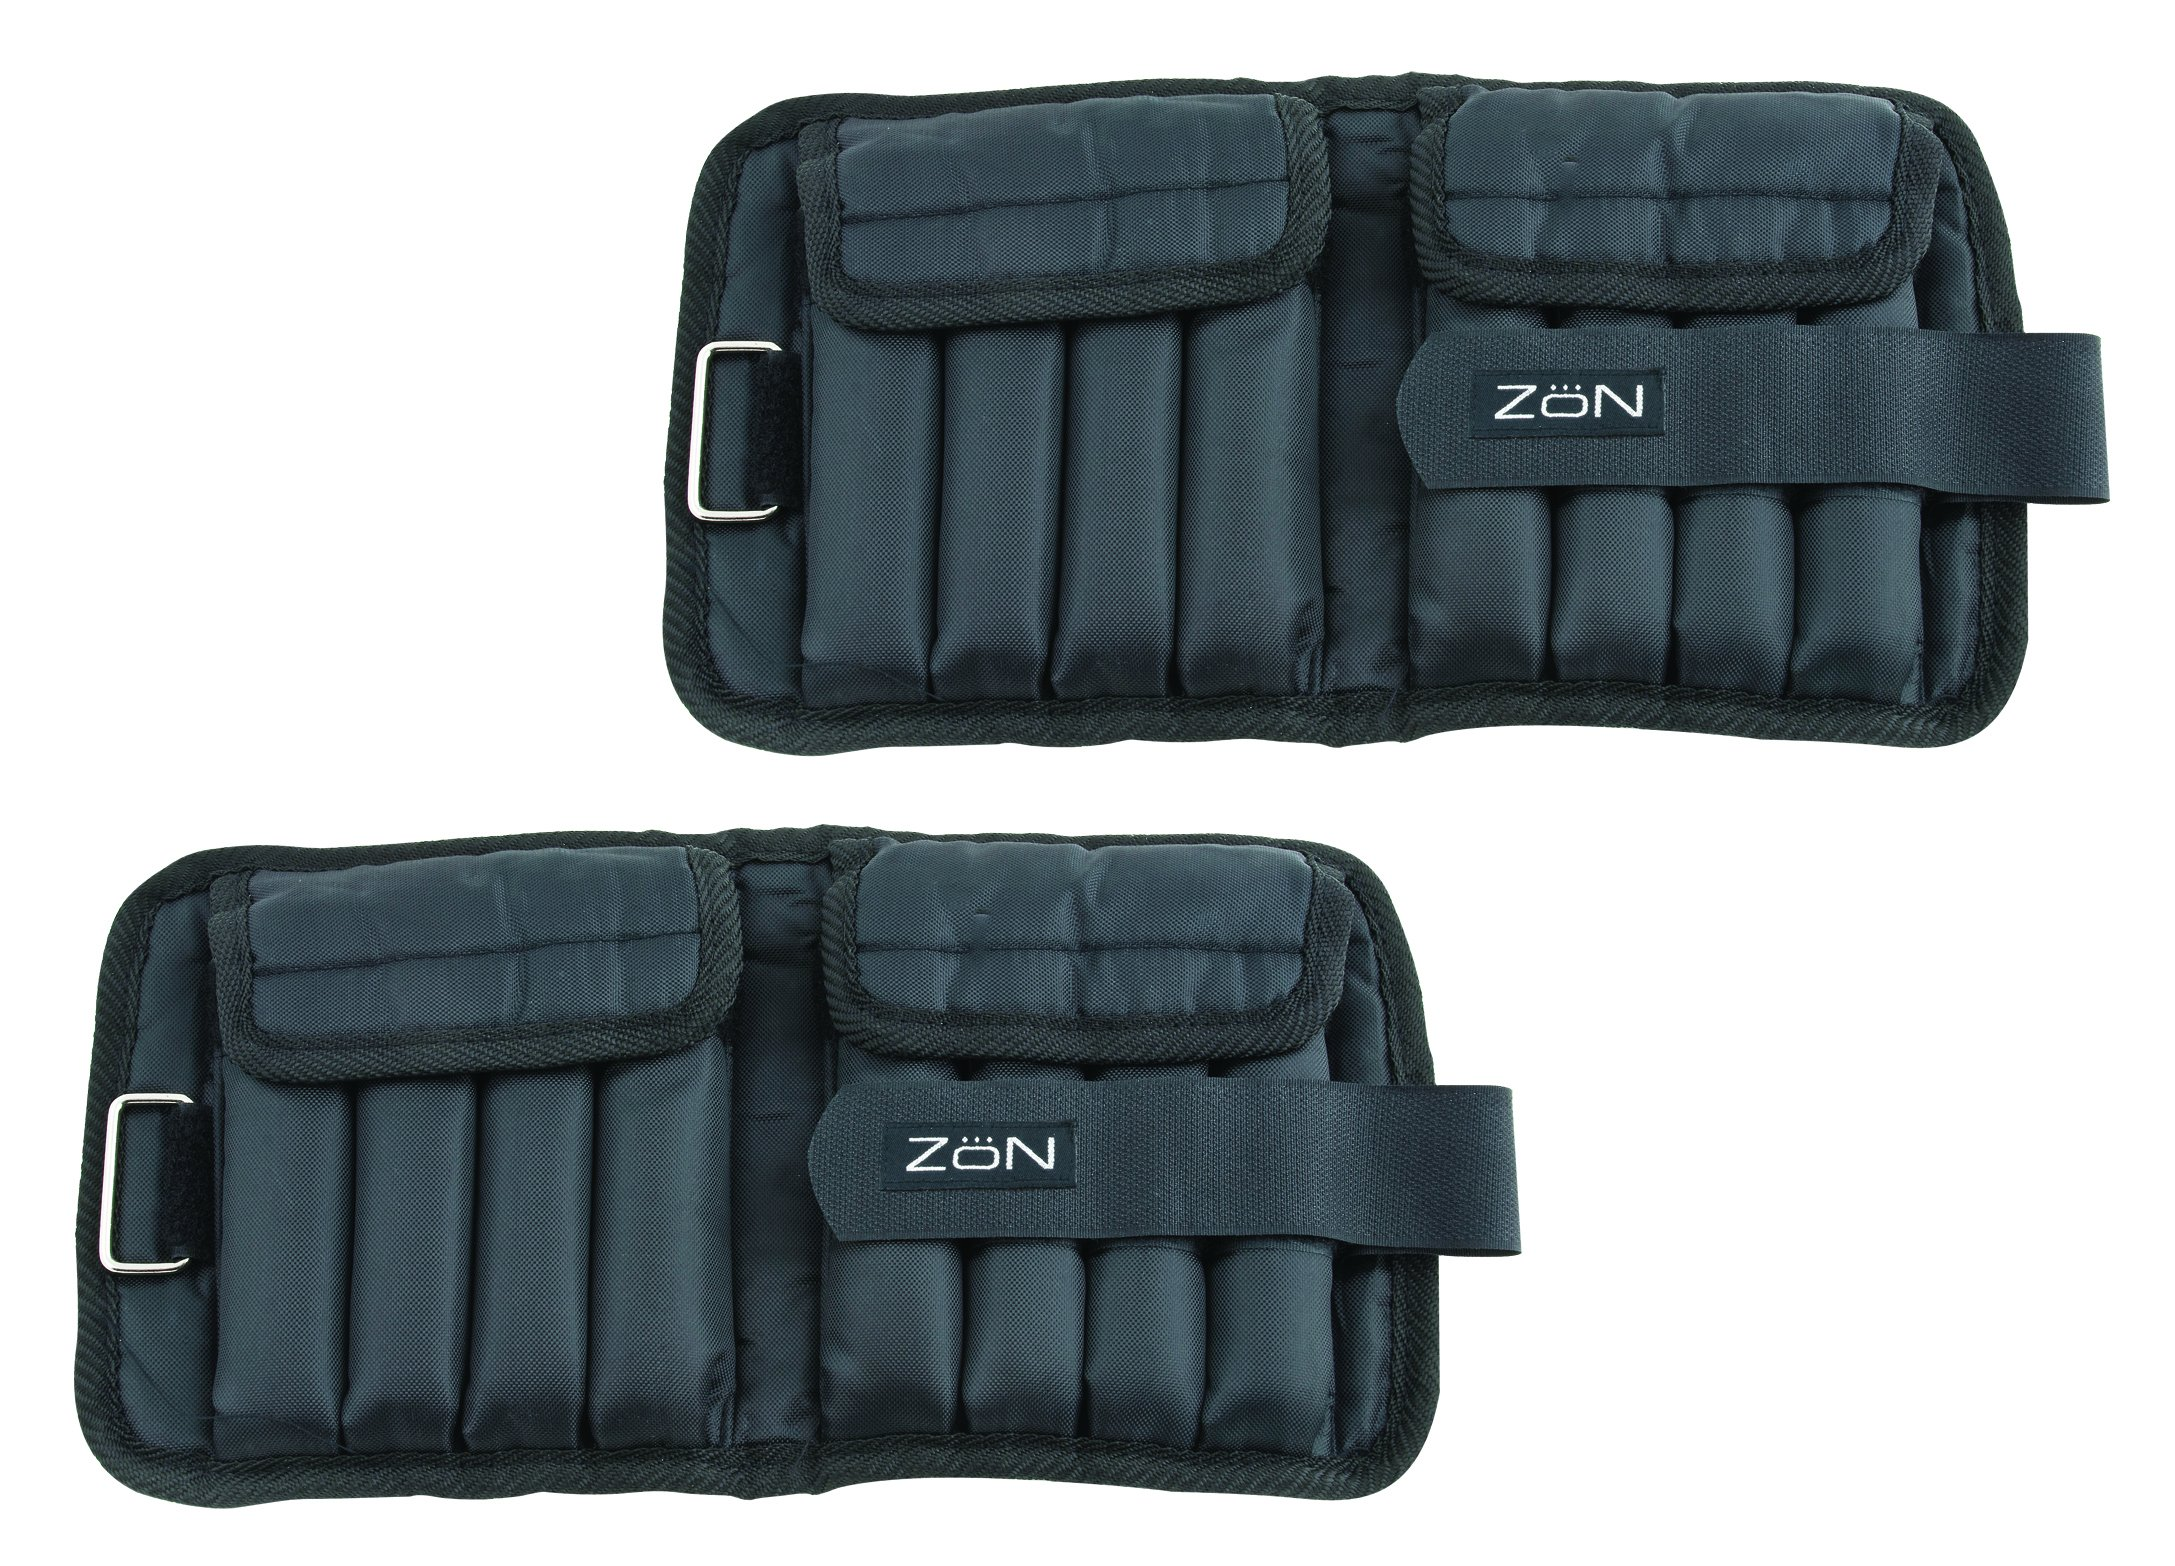 ZoN Ankle/Wrist Weights - 5 lb.